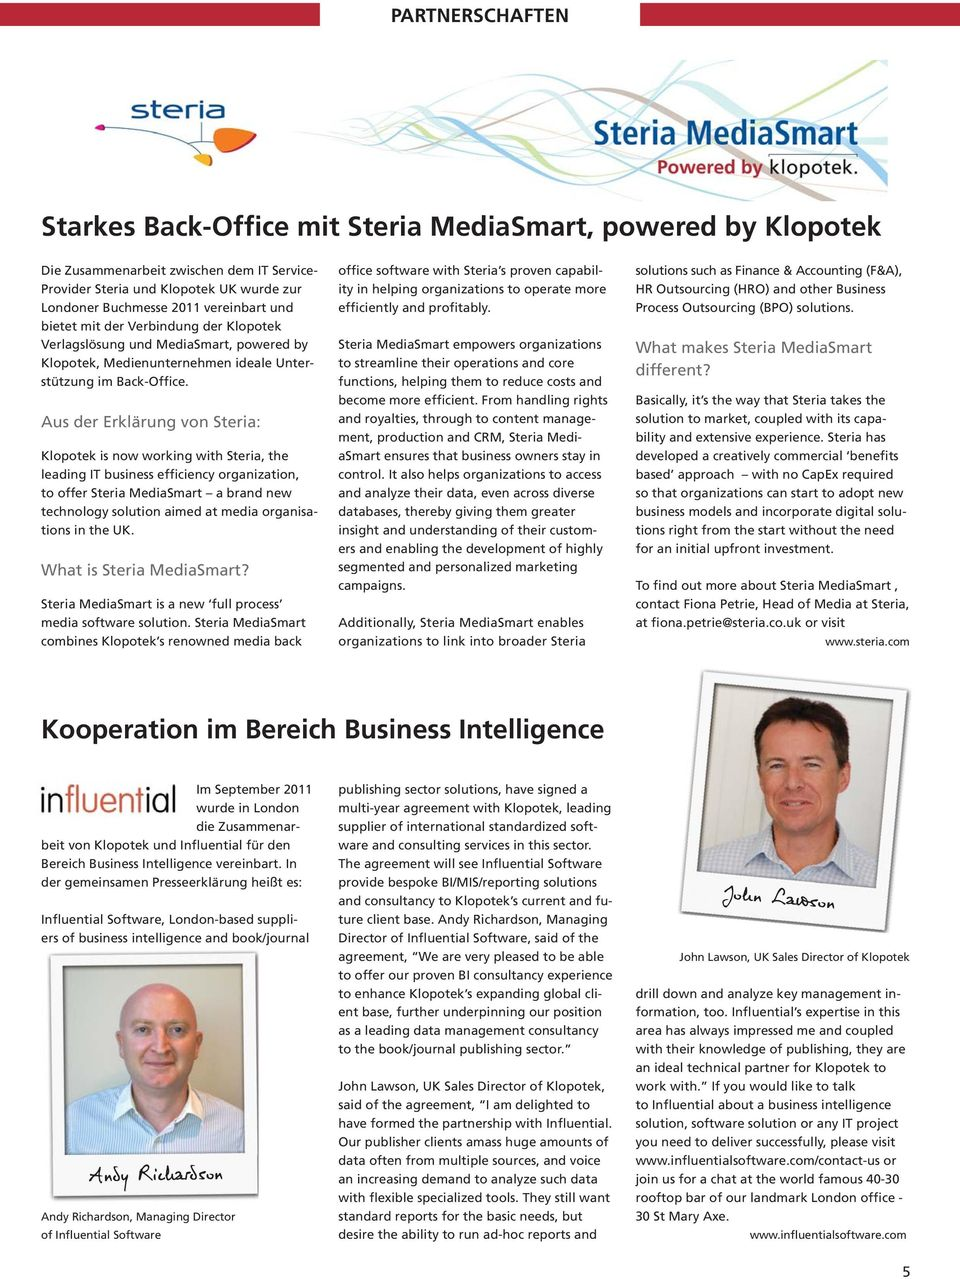 Aus der Erklärung von Steria: Klopotek is now working with Steria, the leading IT business efficiency organization, to offer Steria MediaSmart a brand new technology solution aimed at media